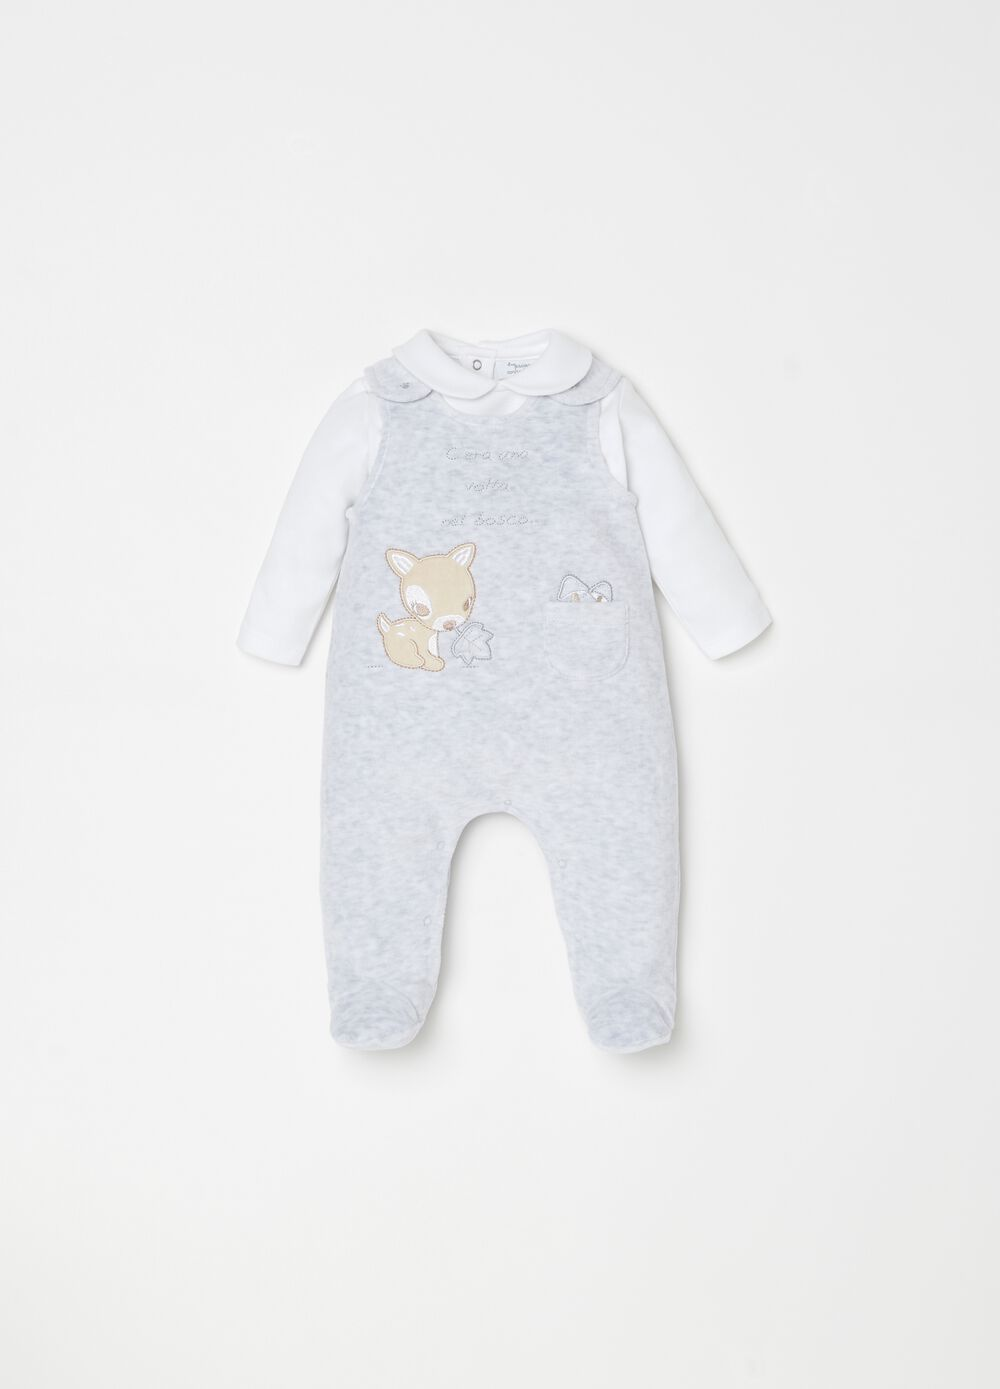 T-shirt and onesie set with feet and embroidery